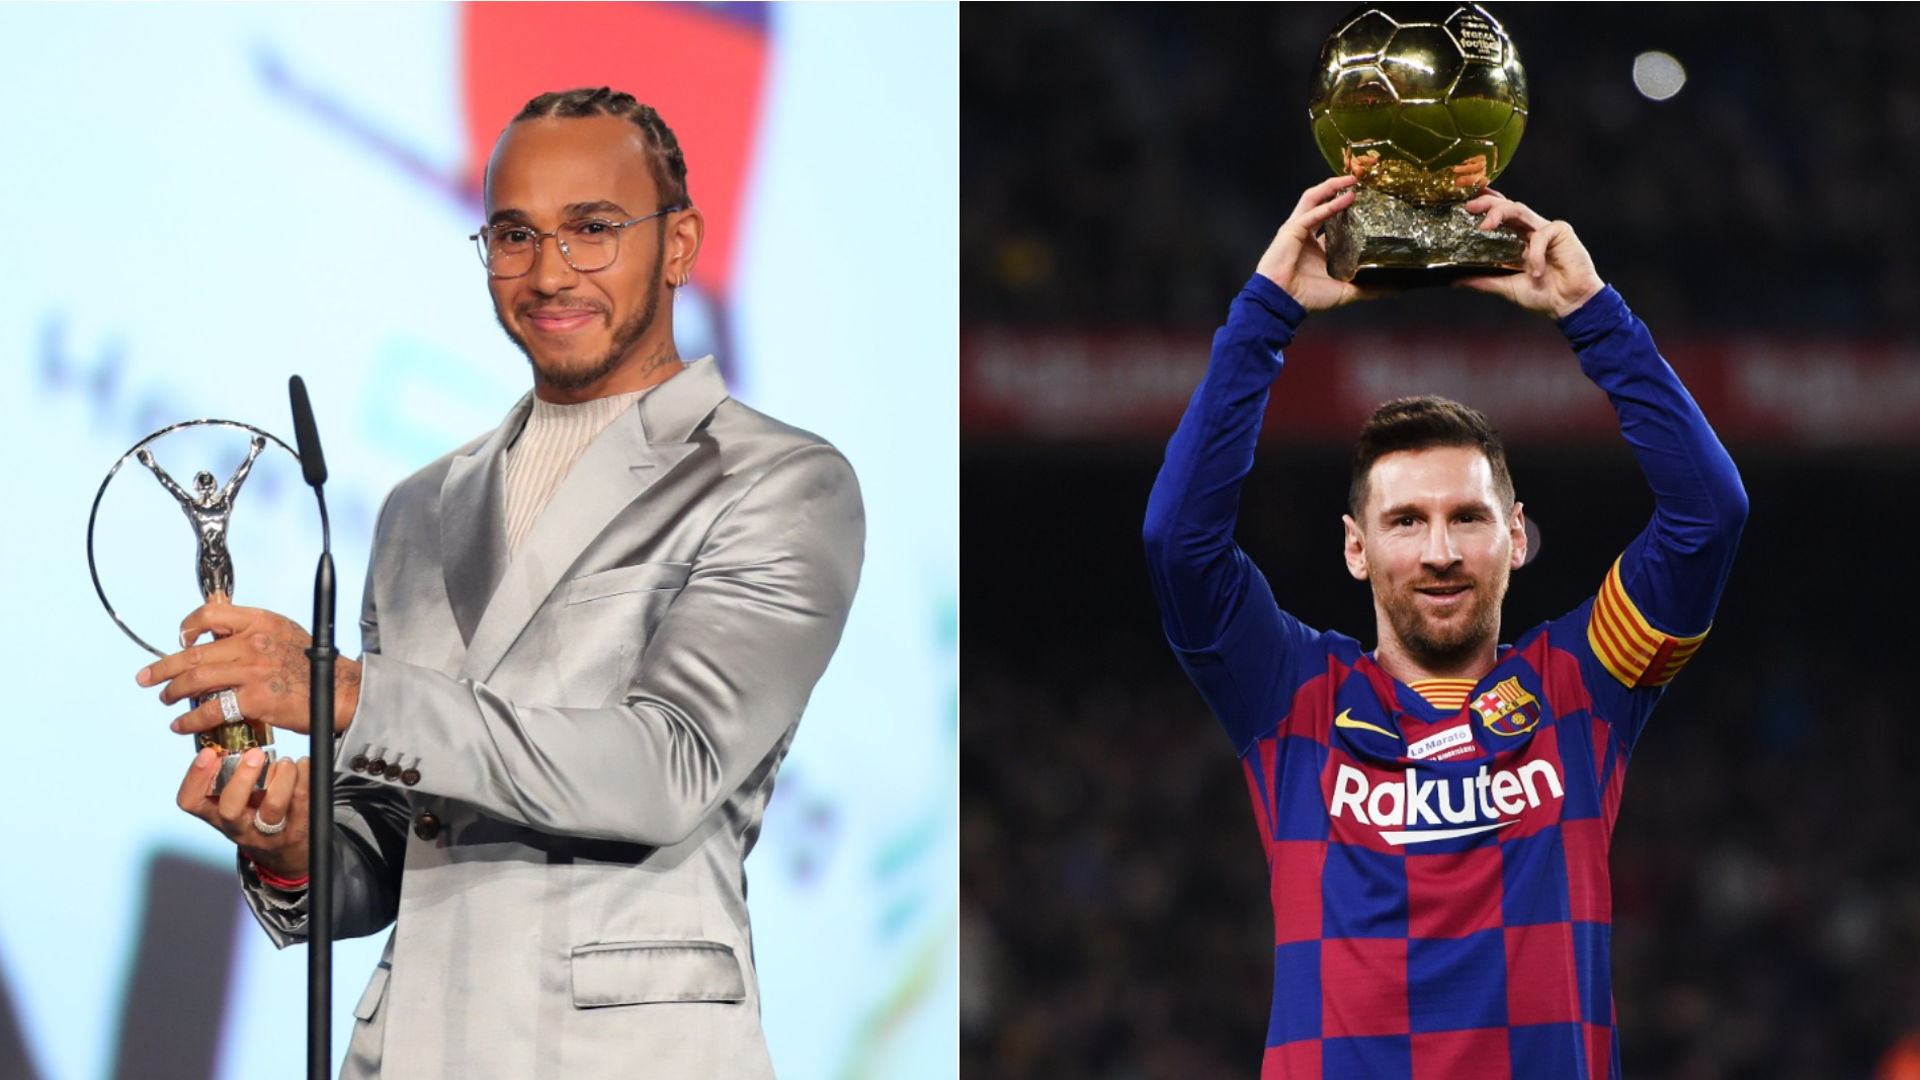 Messi and Hamilton share Laureus World Sportsman of the Year award